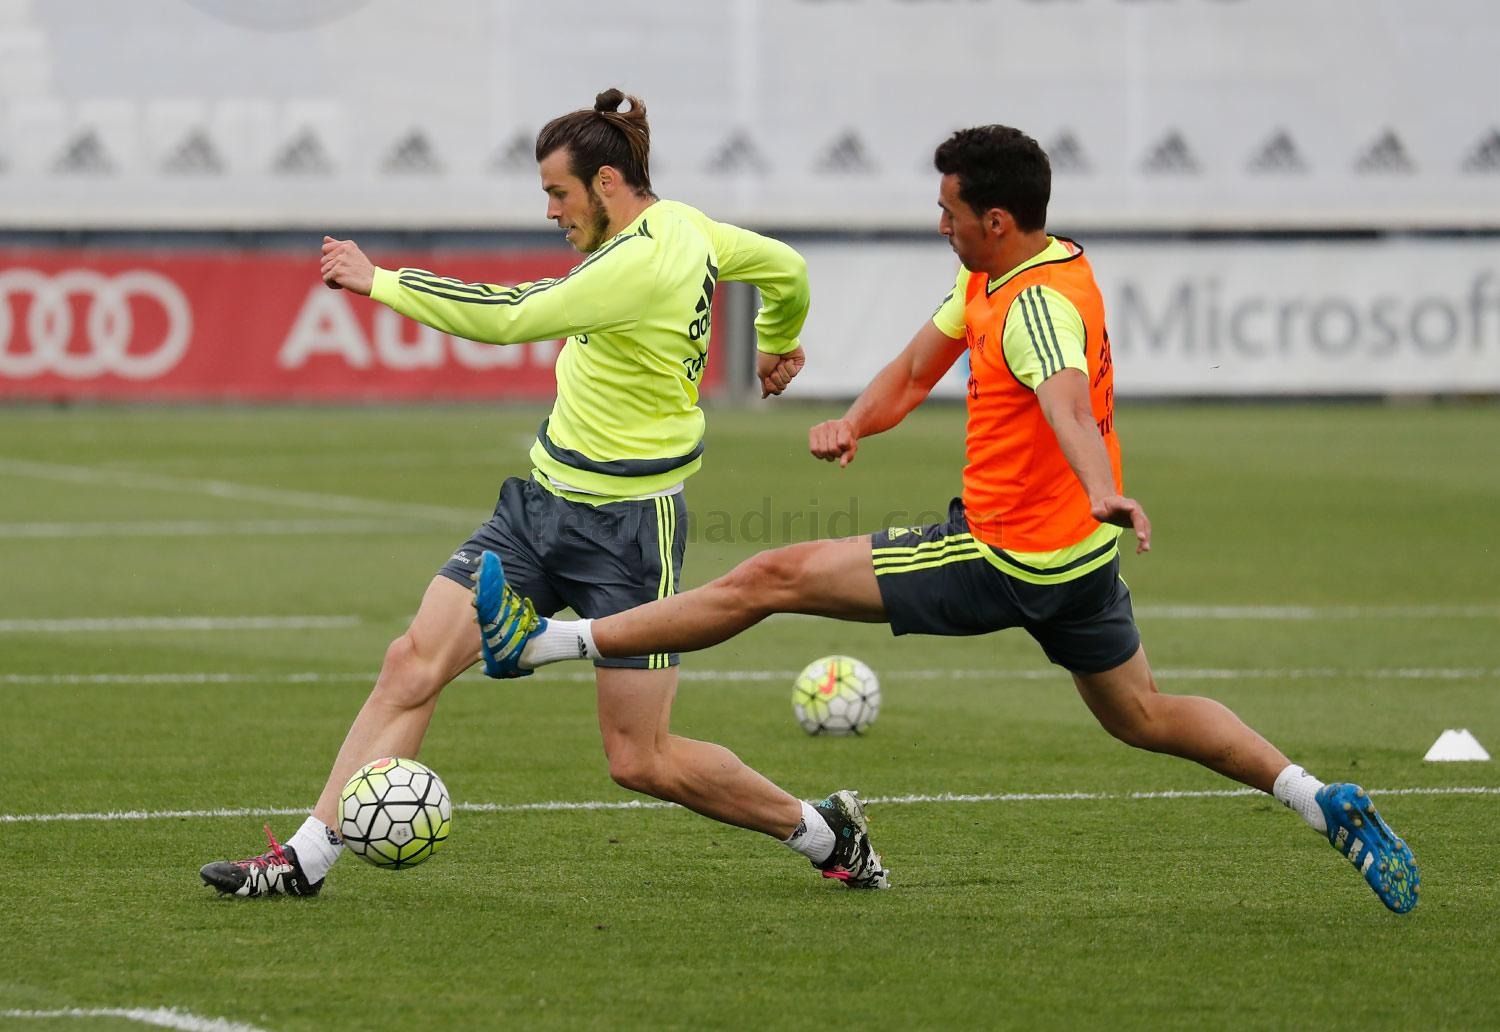 Real Madrid - Entrenamiento del Real Madrid - 22-04-2016